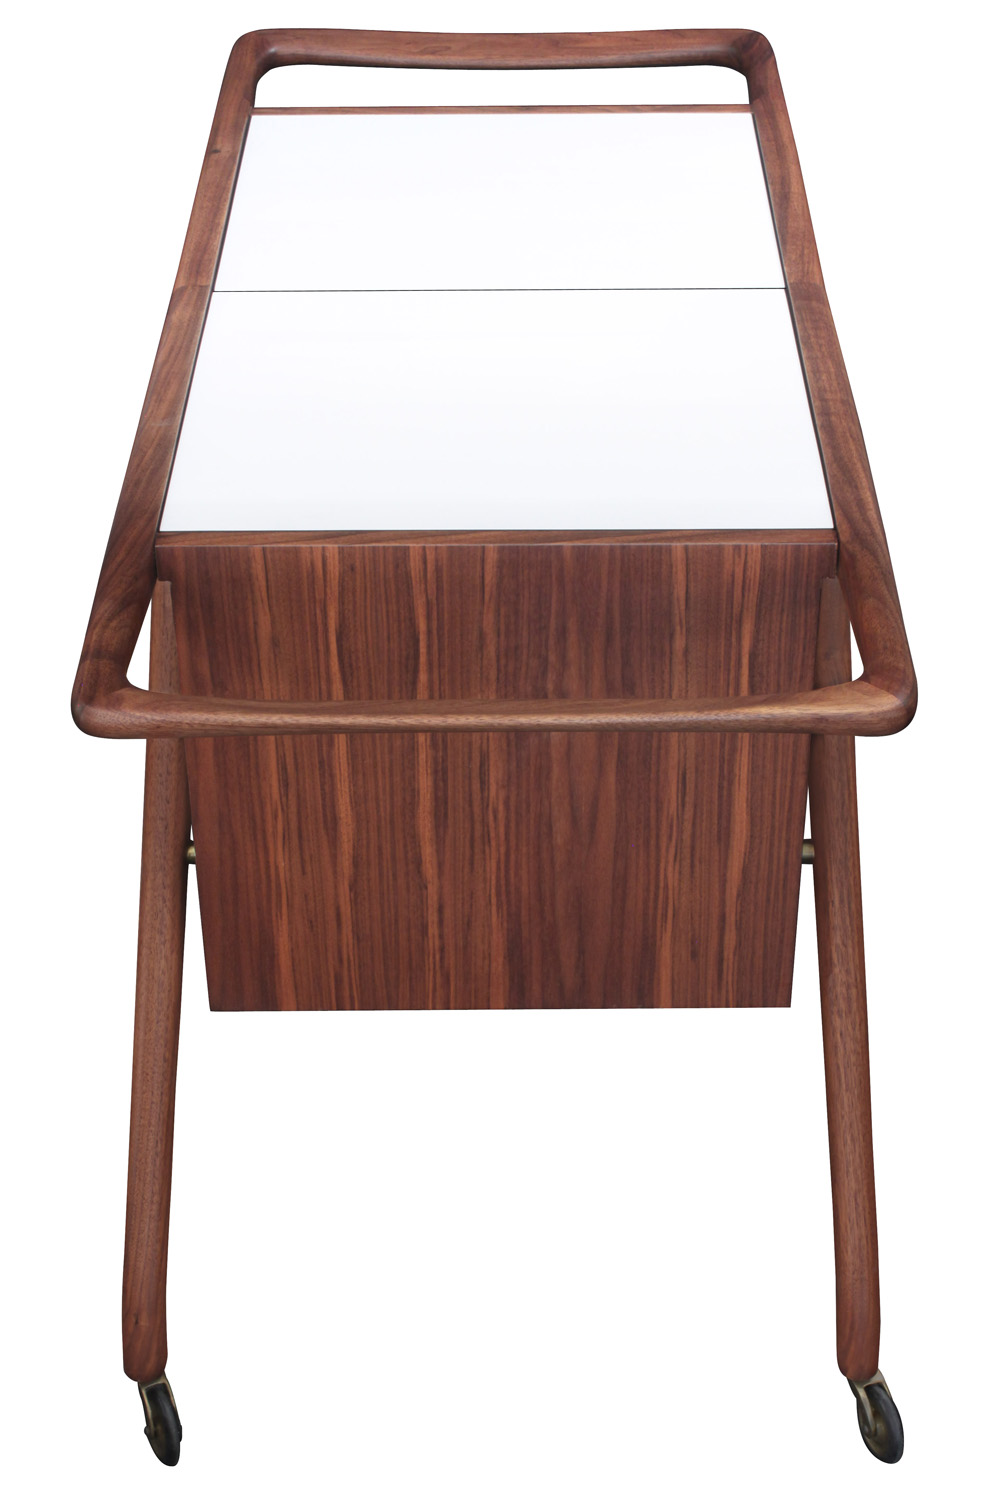 Kagan 120 walnut+white laminate servingcart20 detail5 hires.jpg